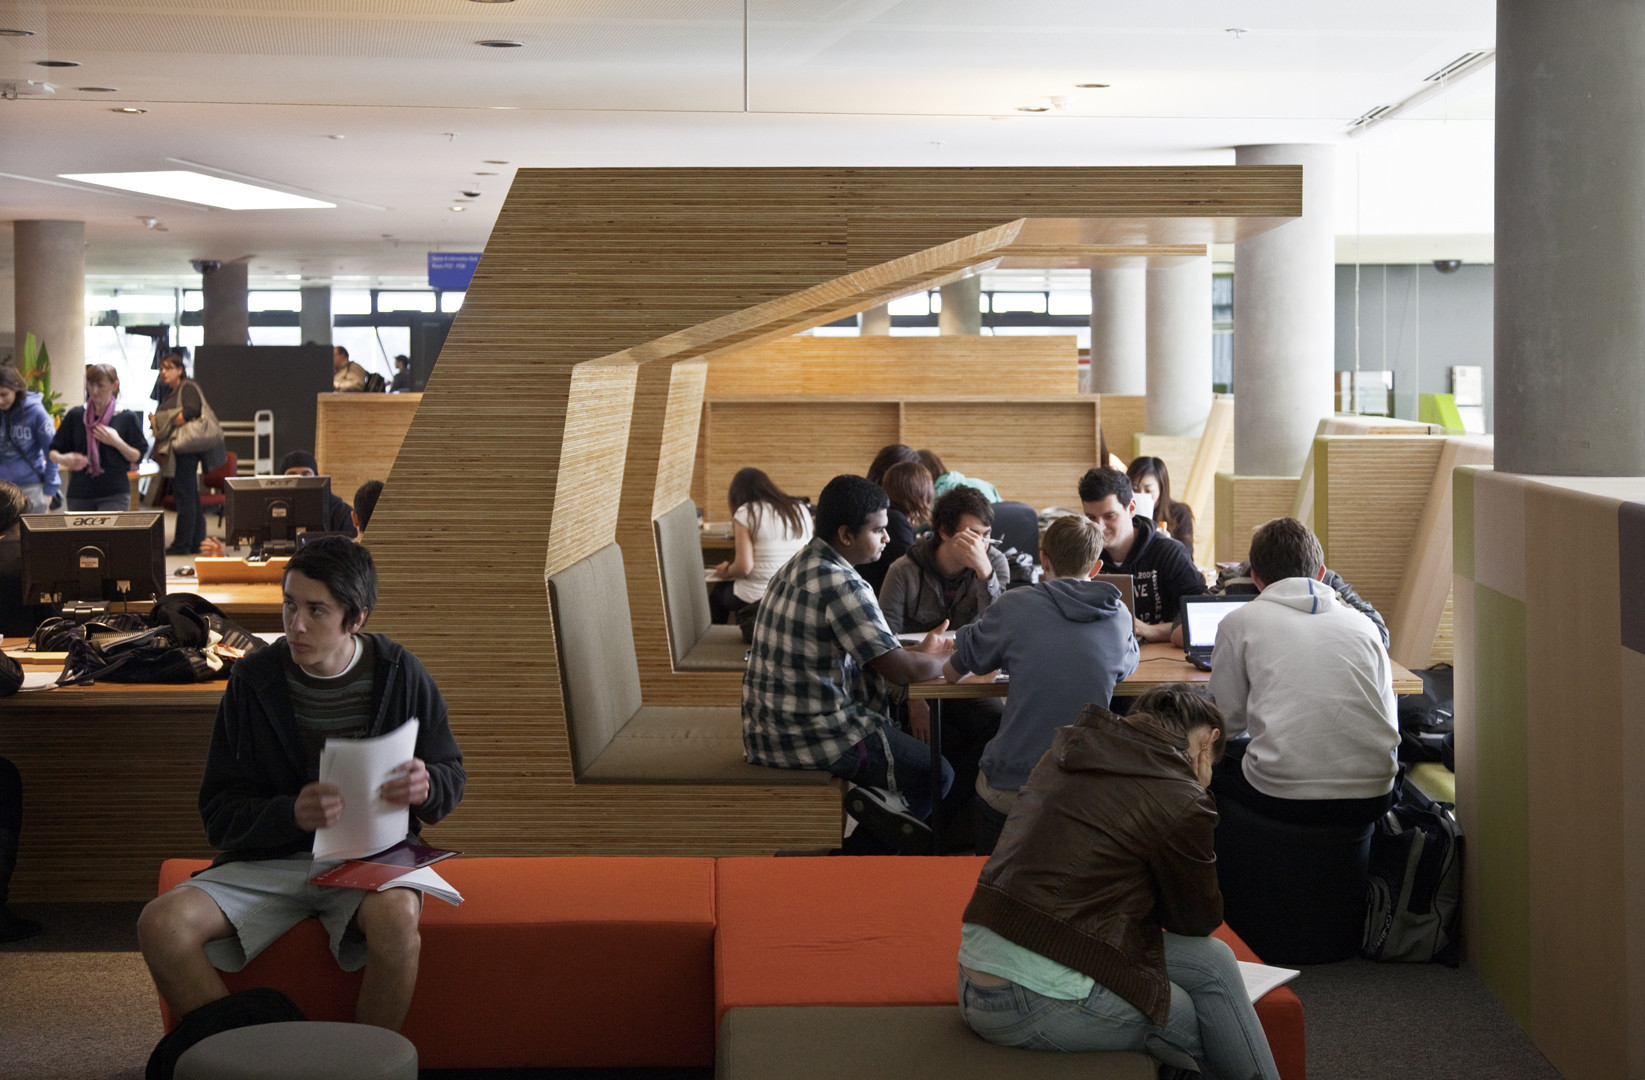 Victoria University - Exercise Science and Sport Precinct and Learning Commons / John Wardle Architects